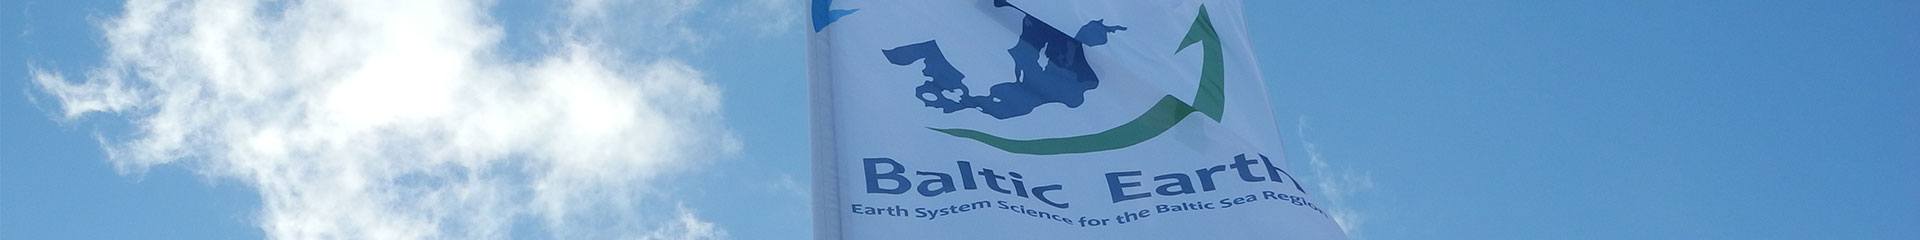 Baltic-earth---panorama---01